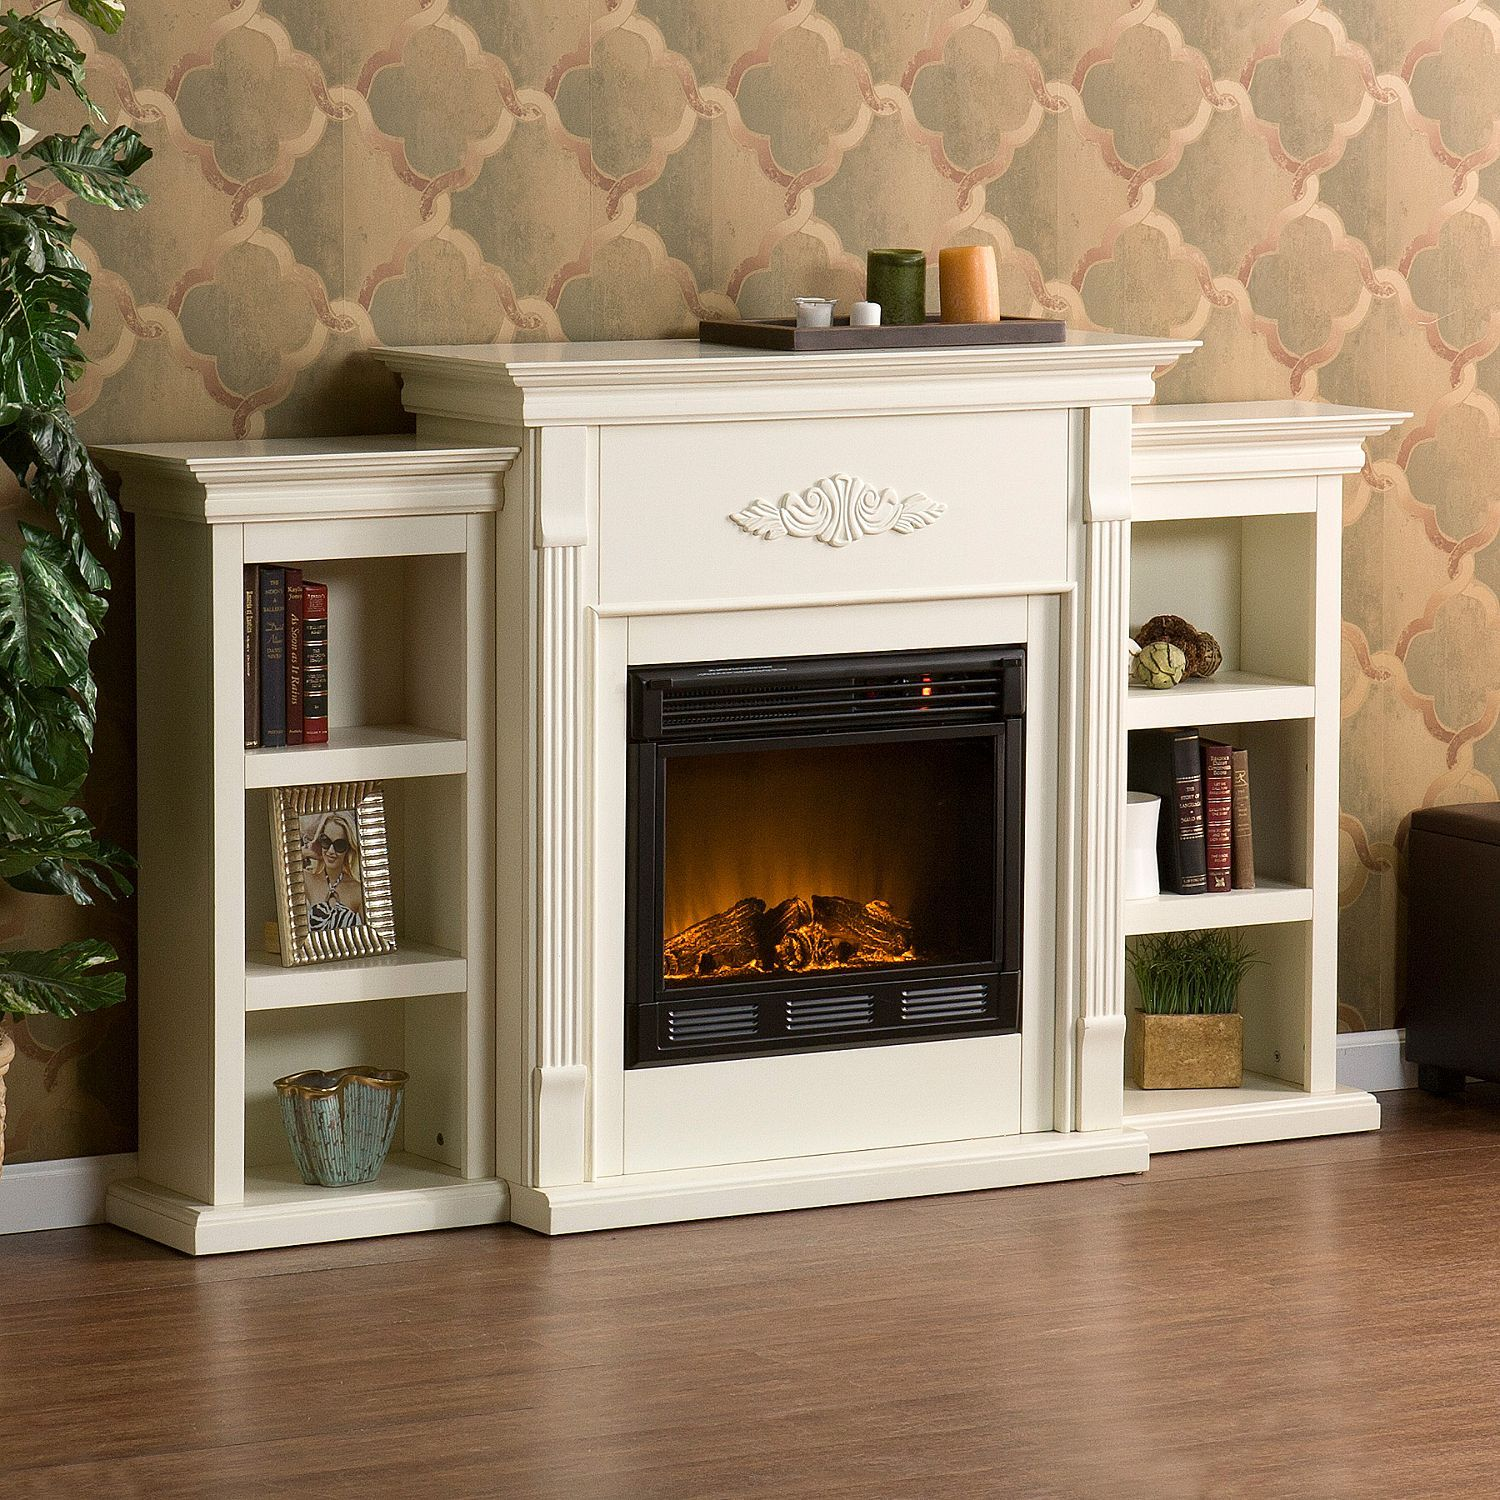 Sams Club Electric Fireplace Best Of Emerson Electric Fireplace Ivory Sam S Club